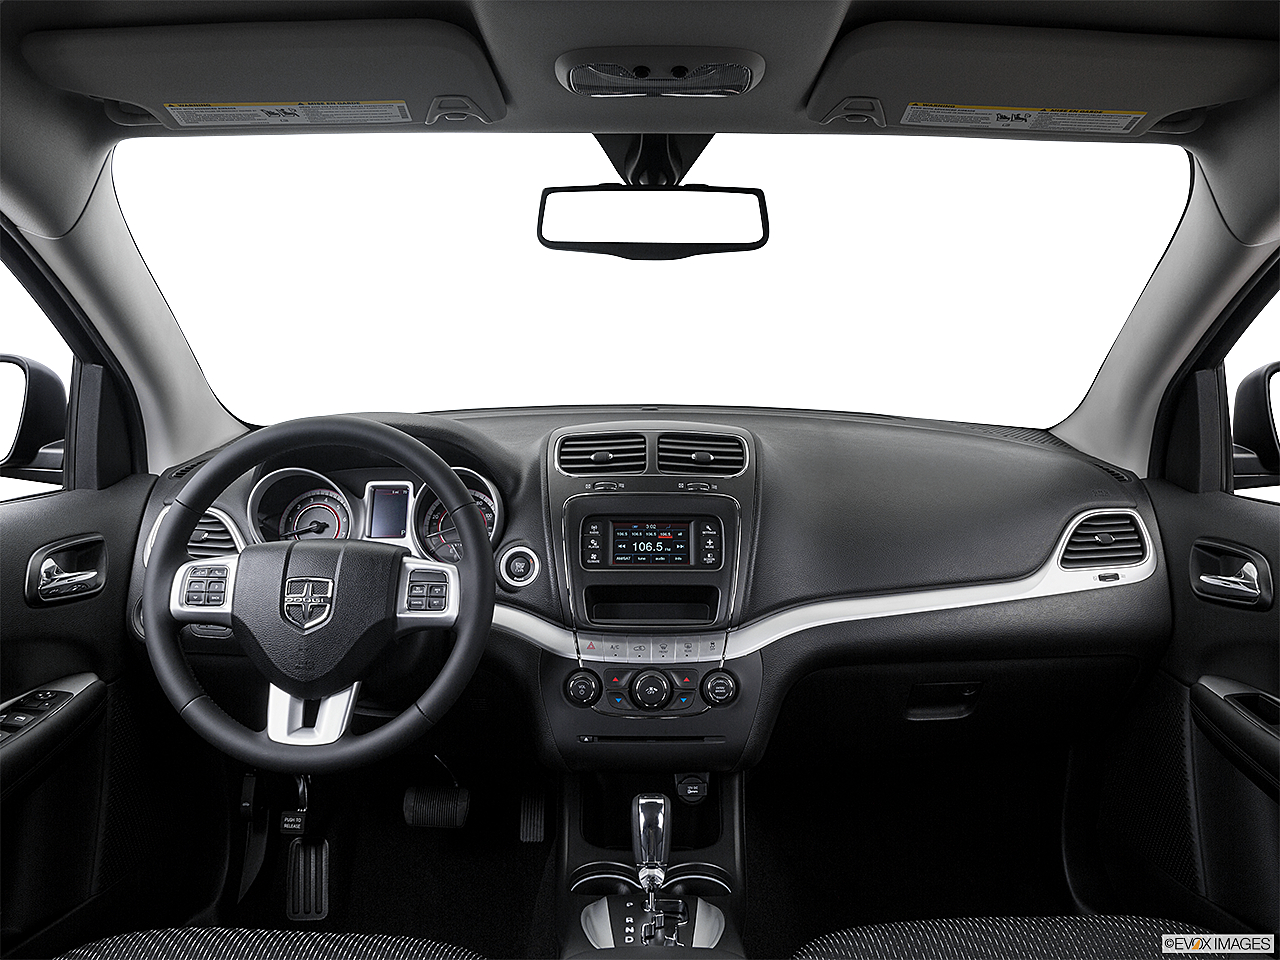 2016 Dodge Journey SE, centered wide dash shot